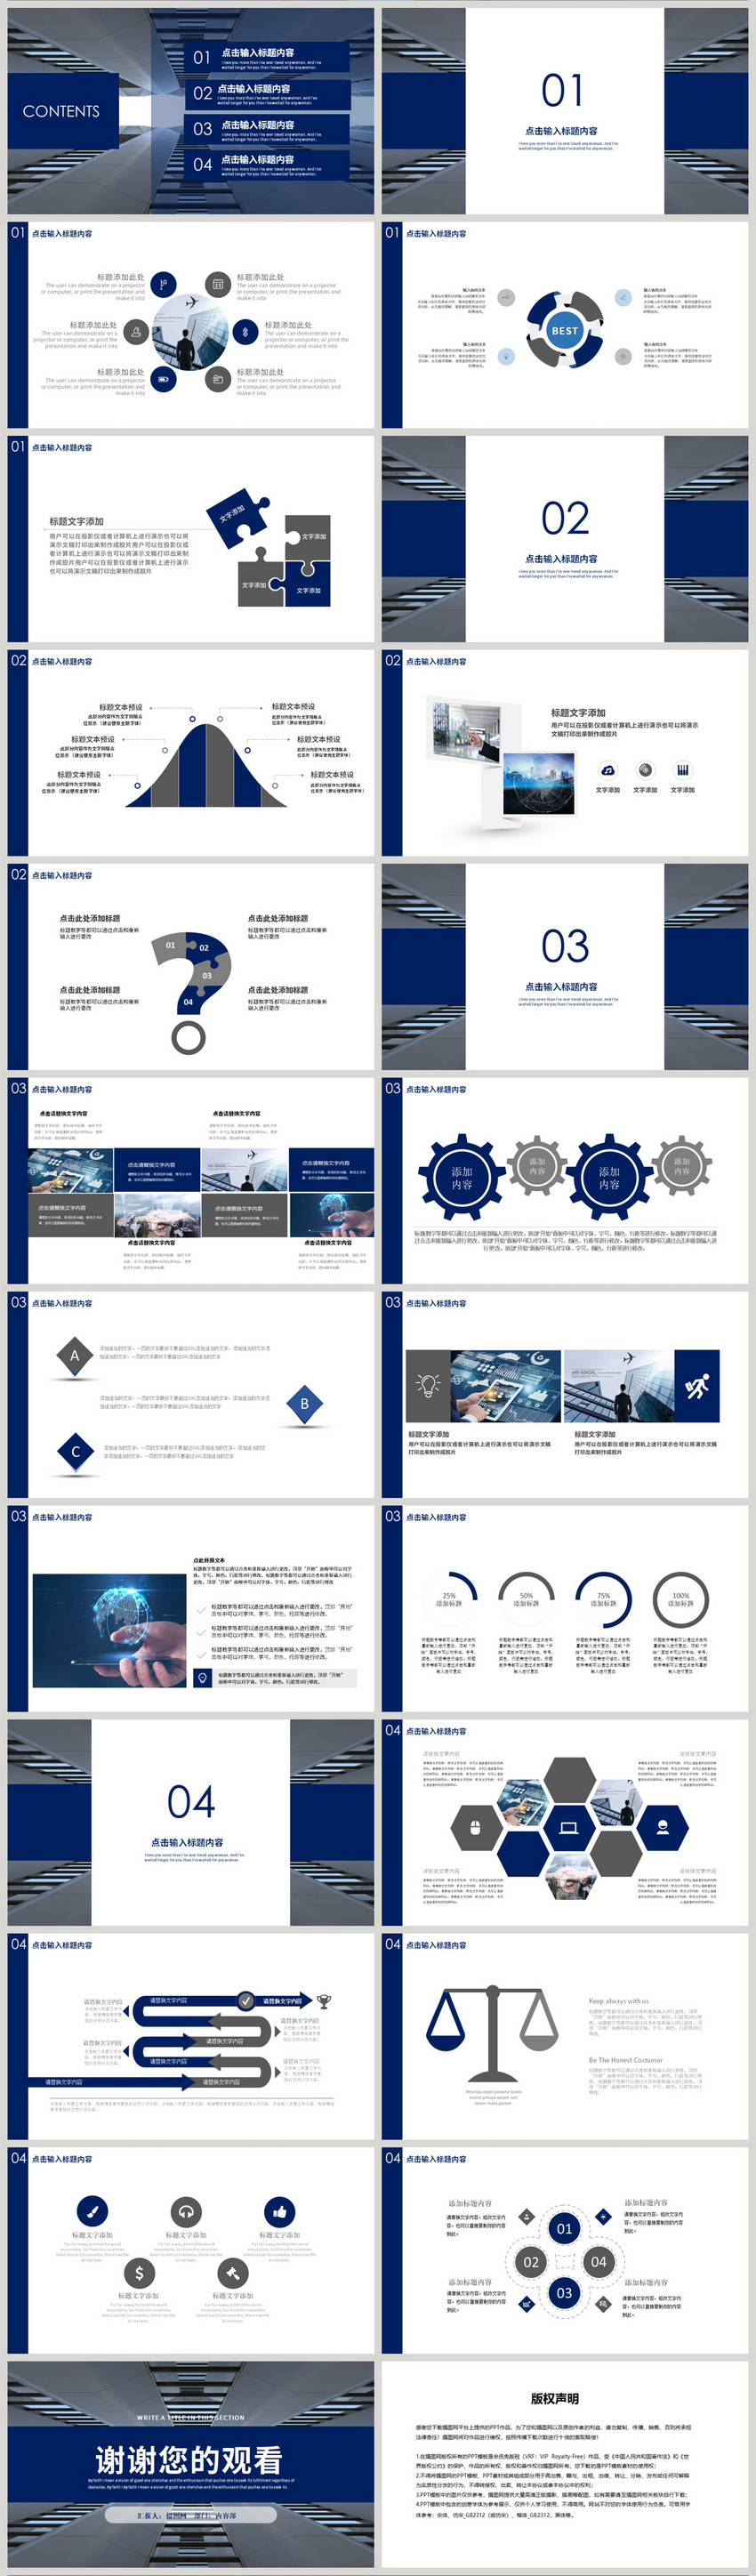 Simple Business Plan Ppt Template Powerpoint Templete Ppt Free Download 401087209 Lovepik Com